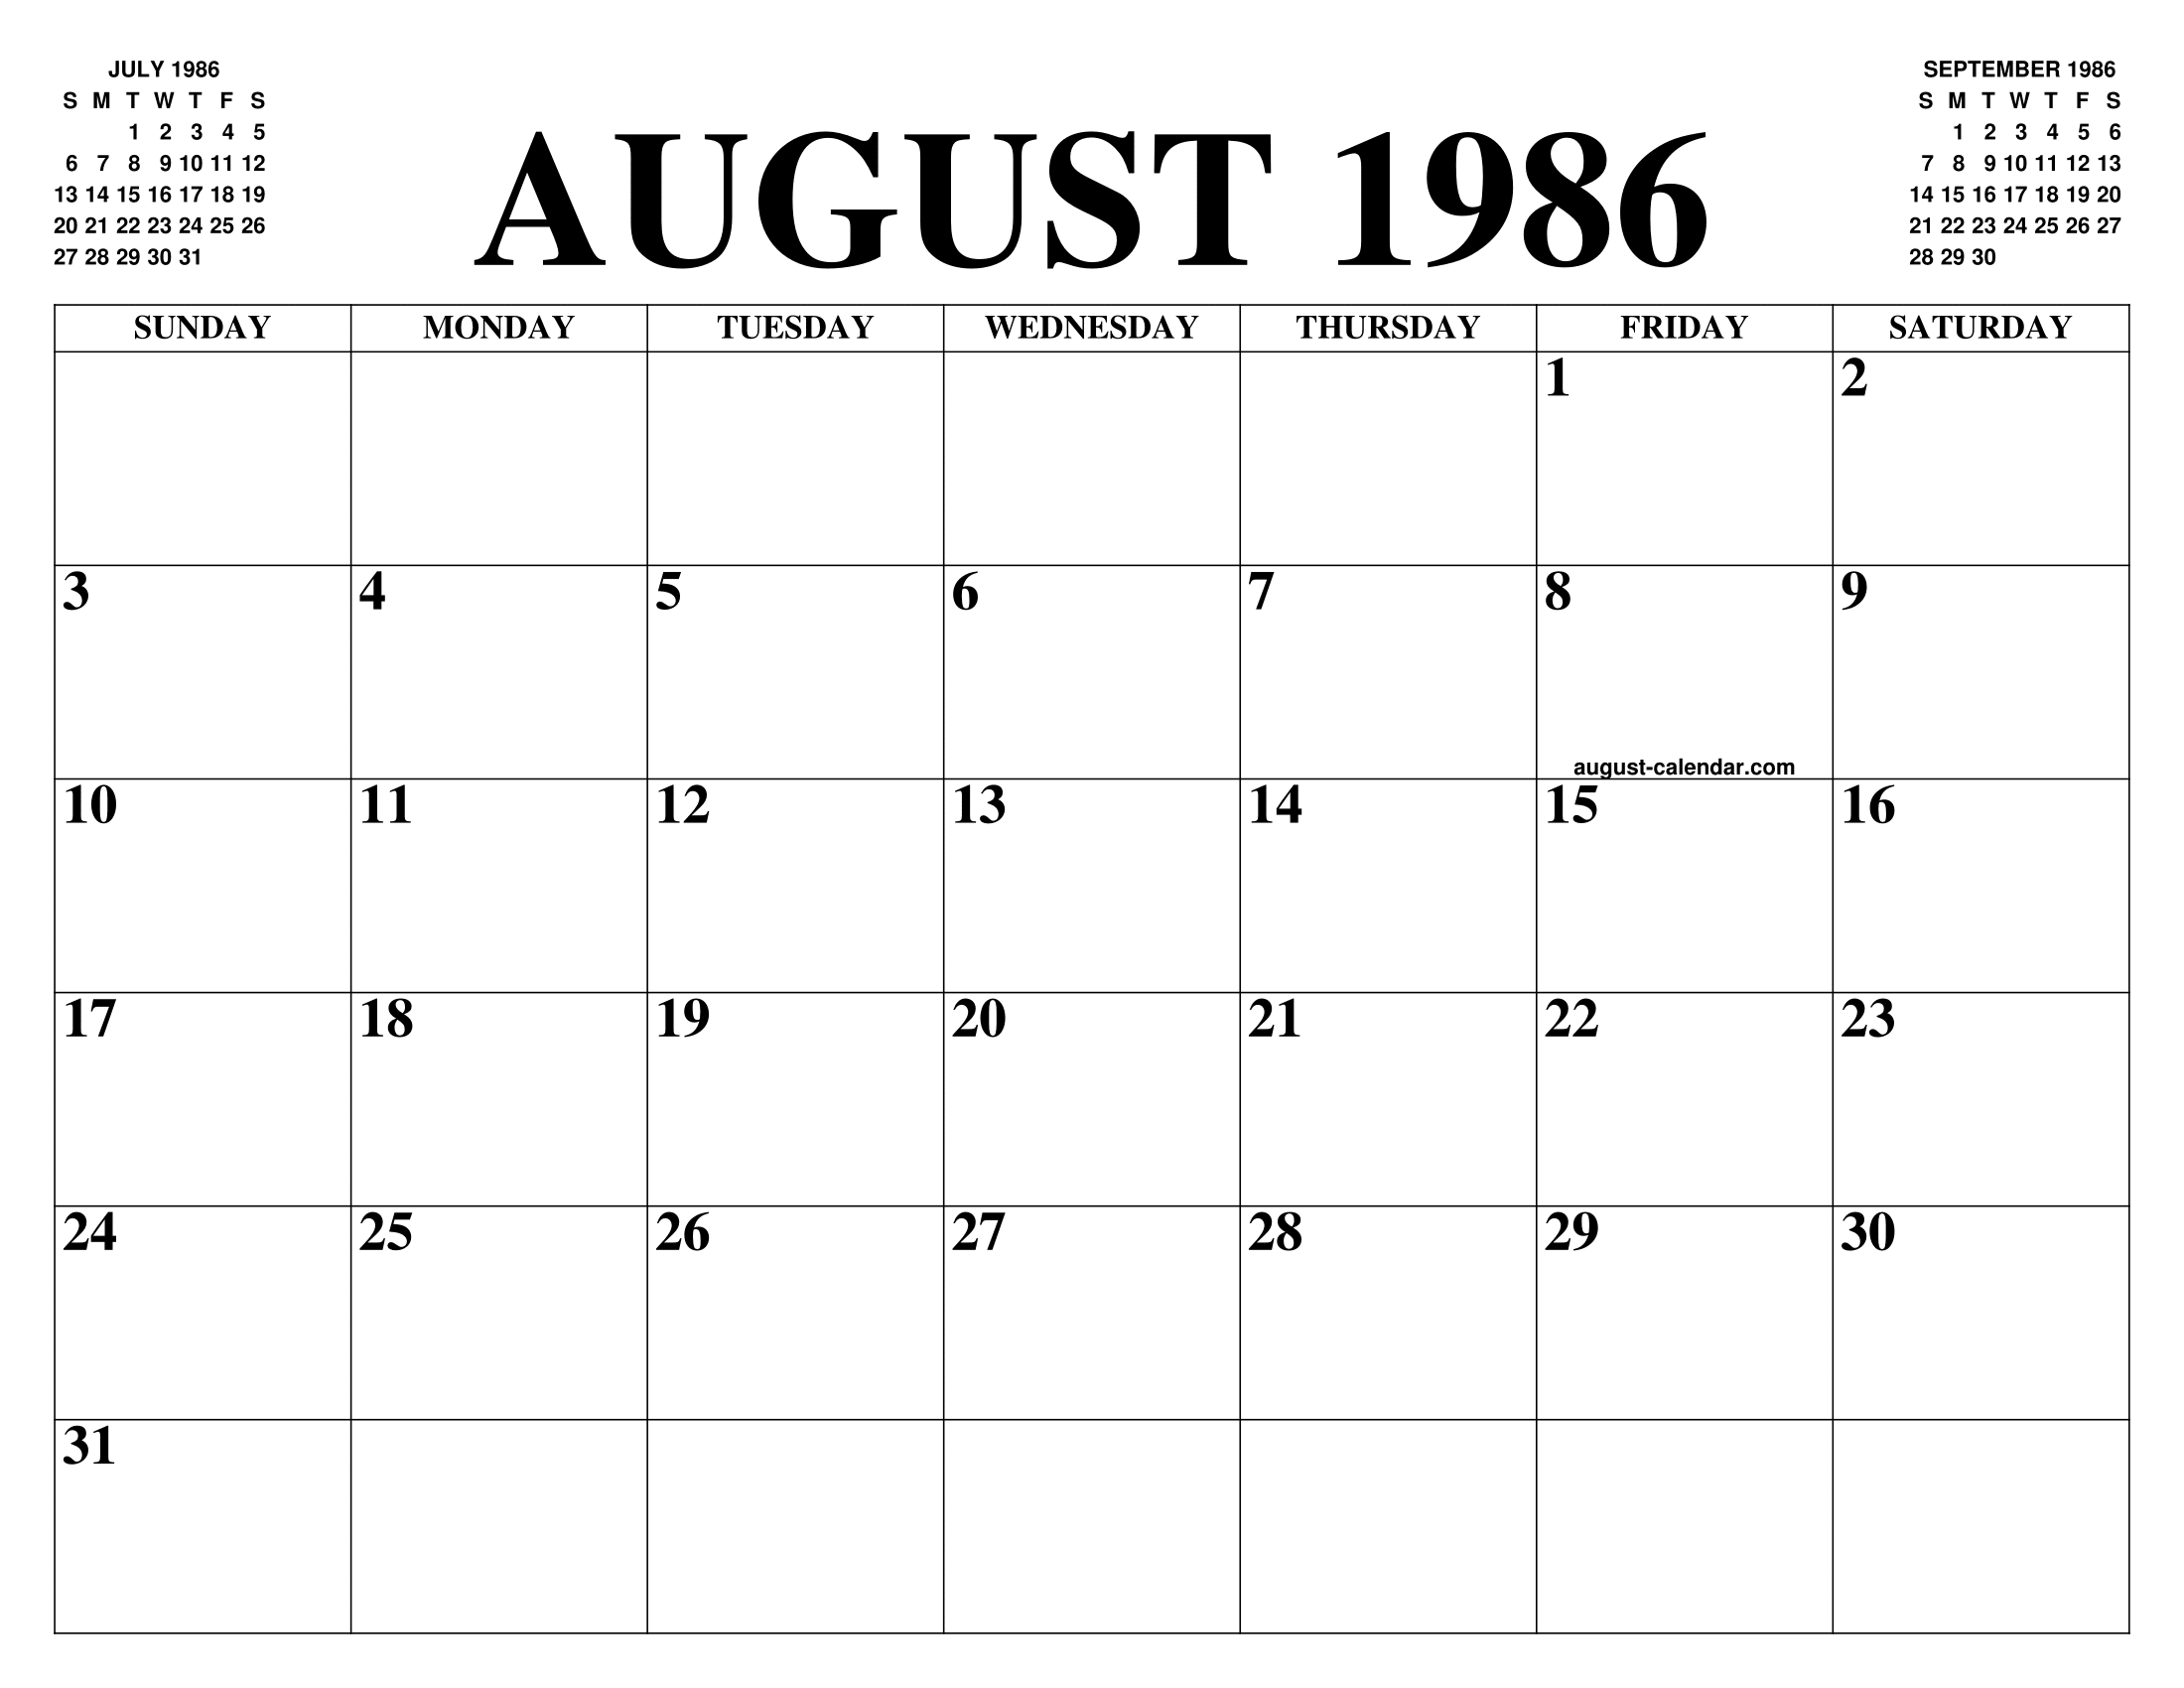 Calendario 1986.August 1986 Calendar Of The Month Free Printable August